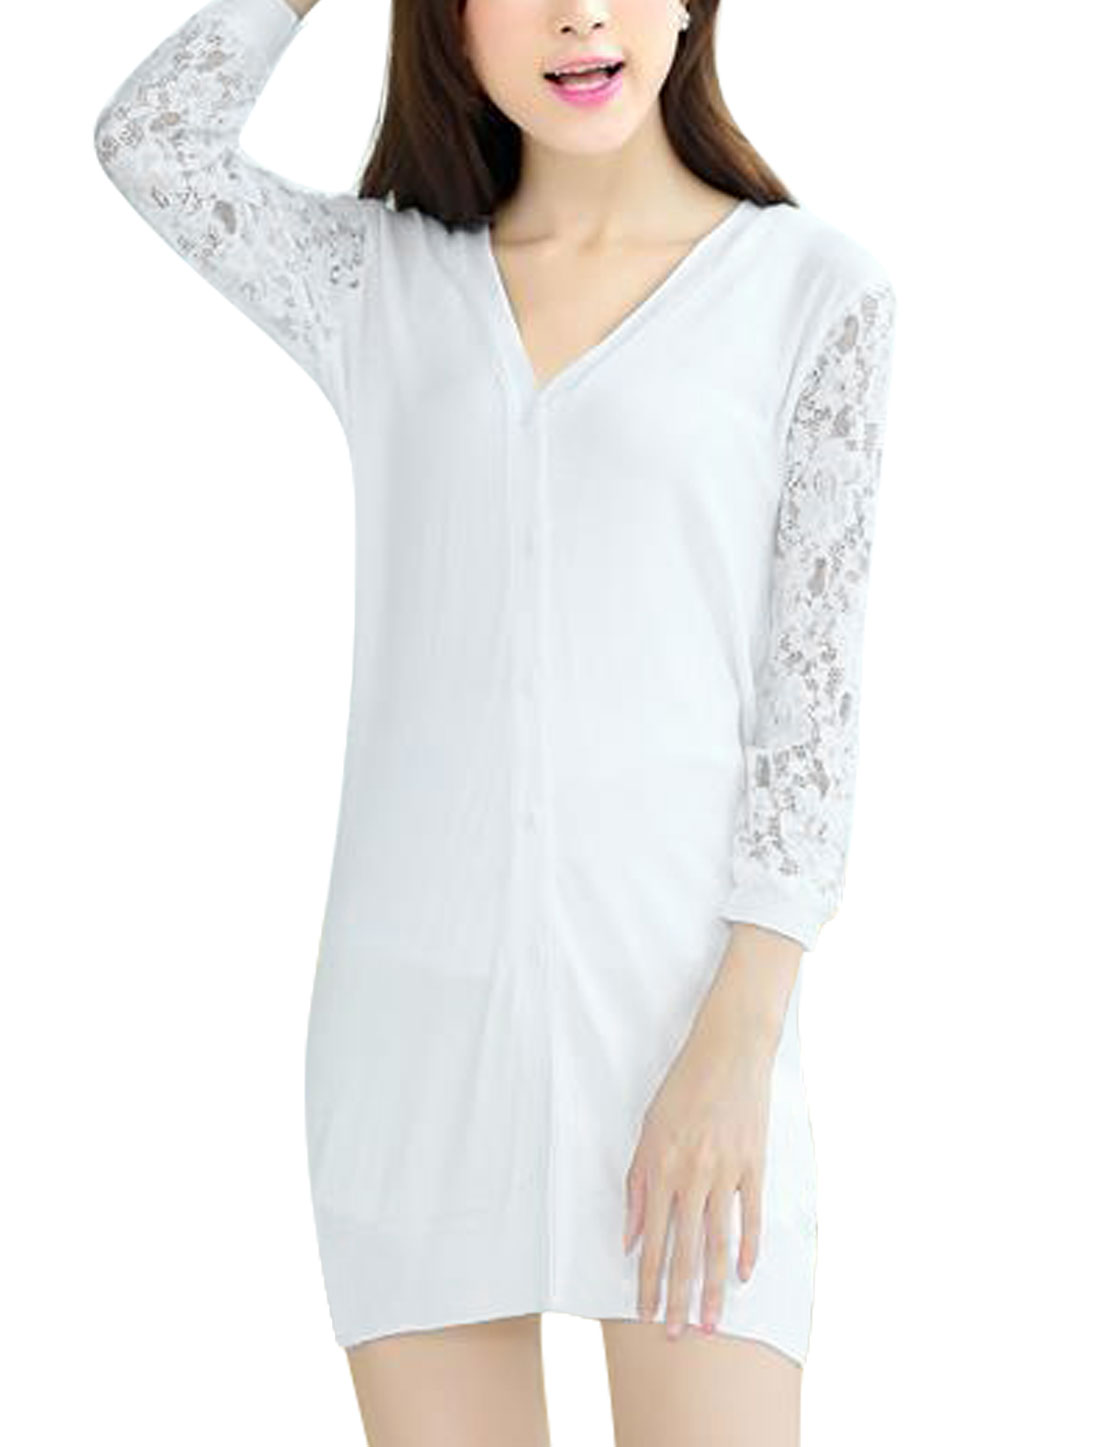 Women V Neckline Design Lace Spliced 3/4 Sleeve Chic Knit Cardigan White S